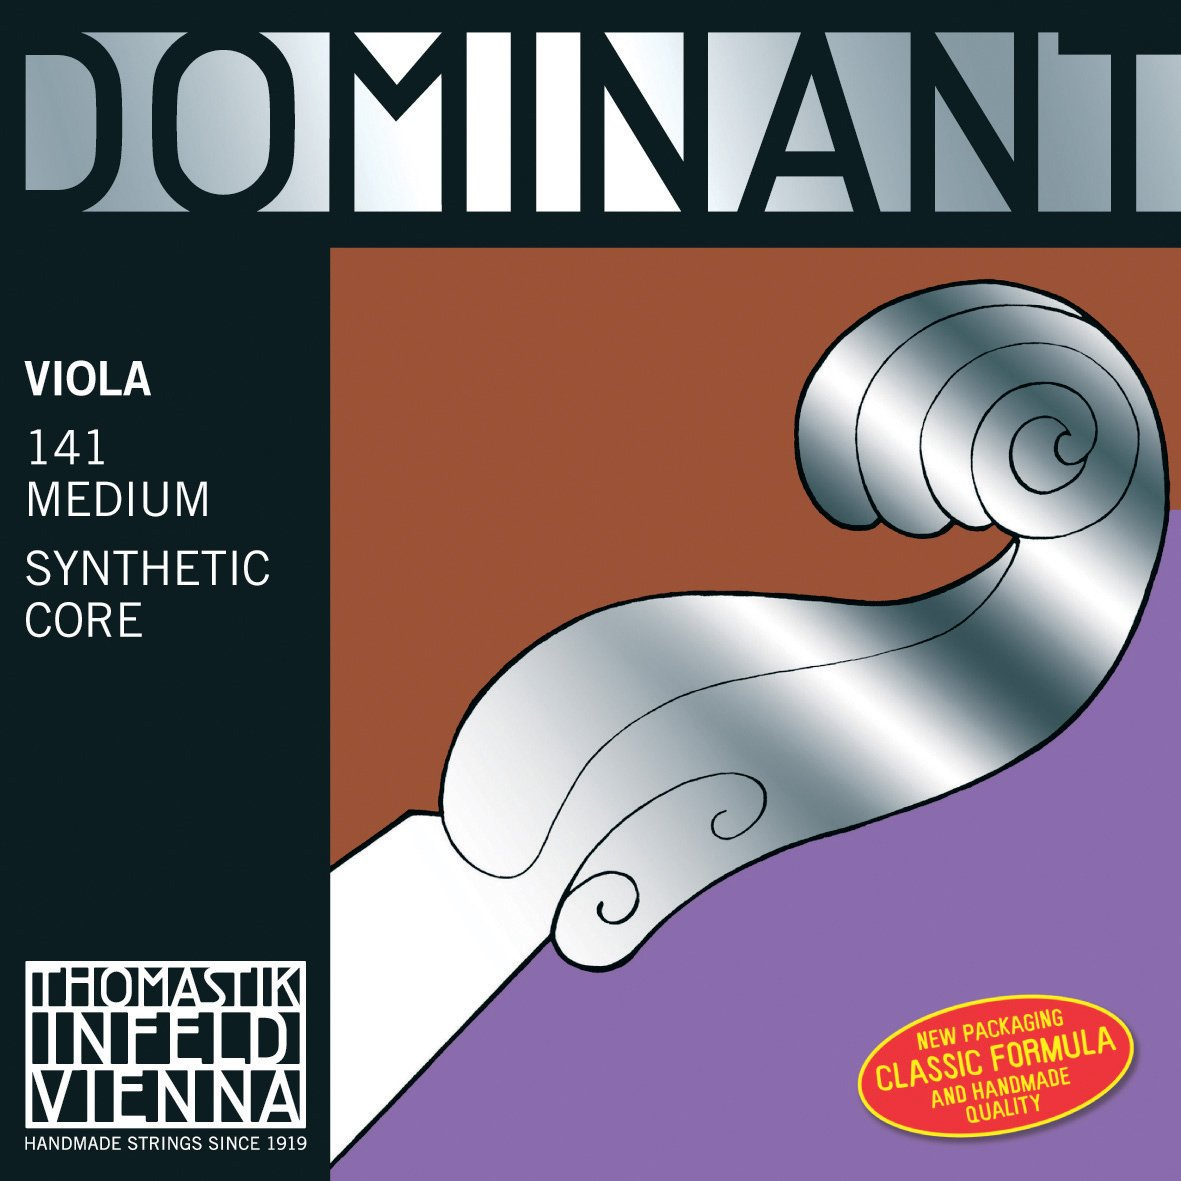 Thomastik-Infeld 4125 Dominant, Viola Strings, Complete Set, 16-Inch Connolly Music Company 4125.0